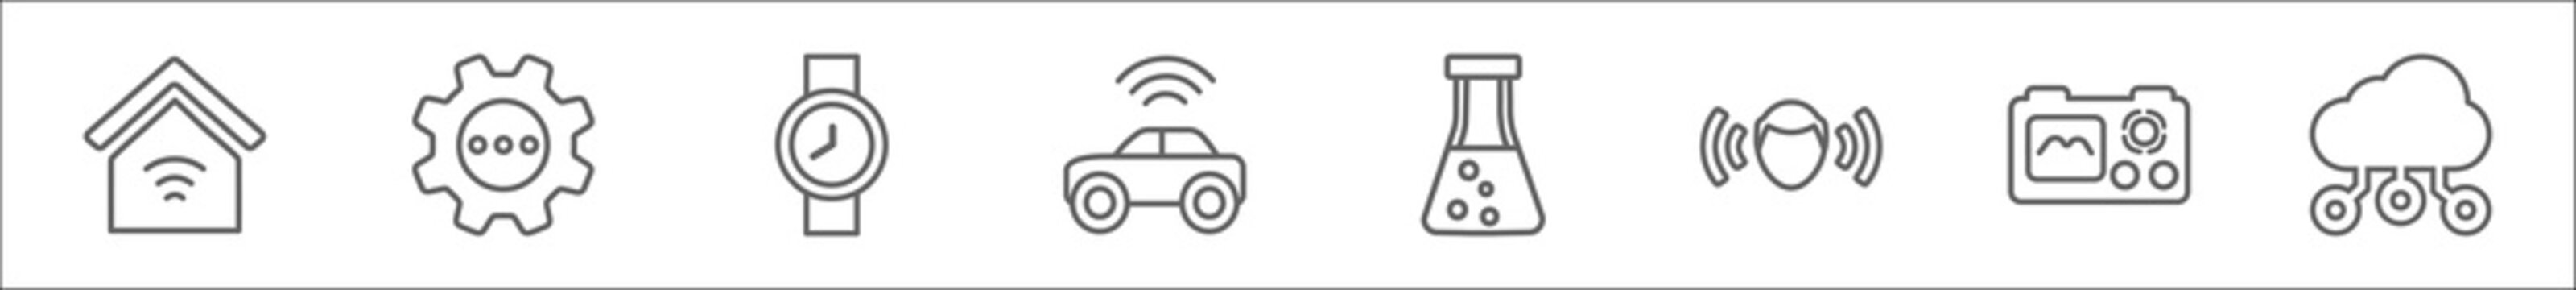 outline set of artificial intellegence line icons. linear vector icons such as smart home, processing, wristwatch, driverless autonomous car, science, immersive, nano sensor, cloud intelligence